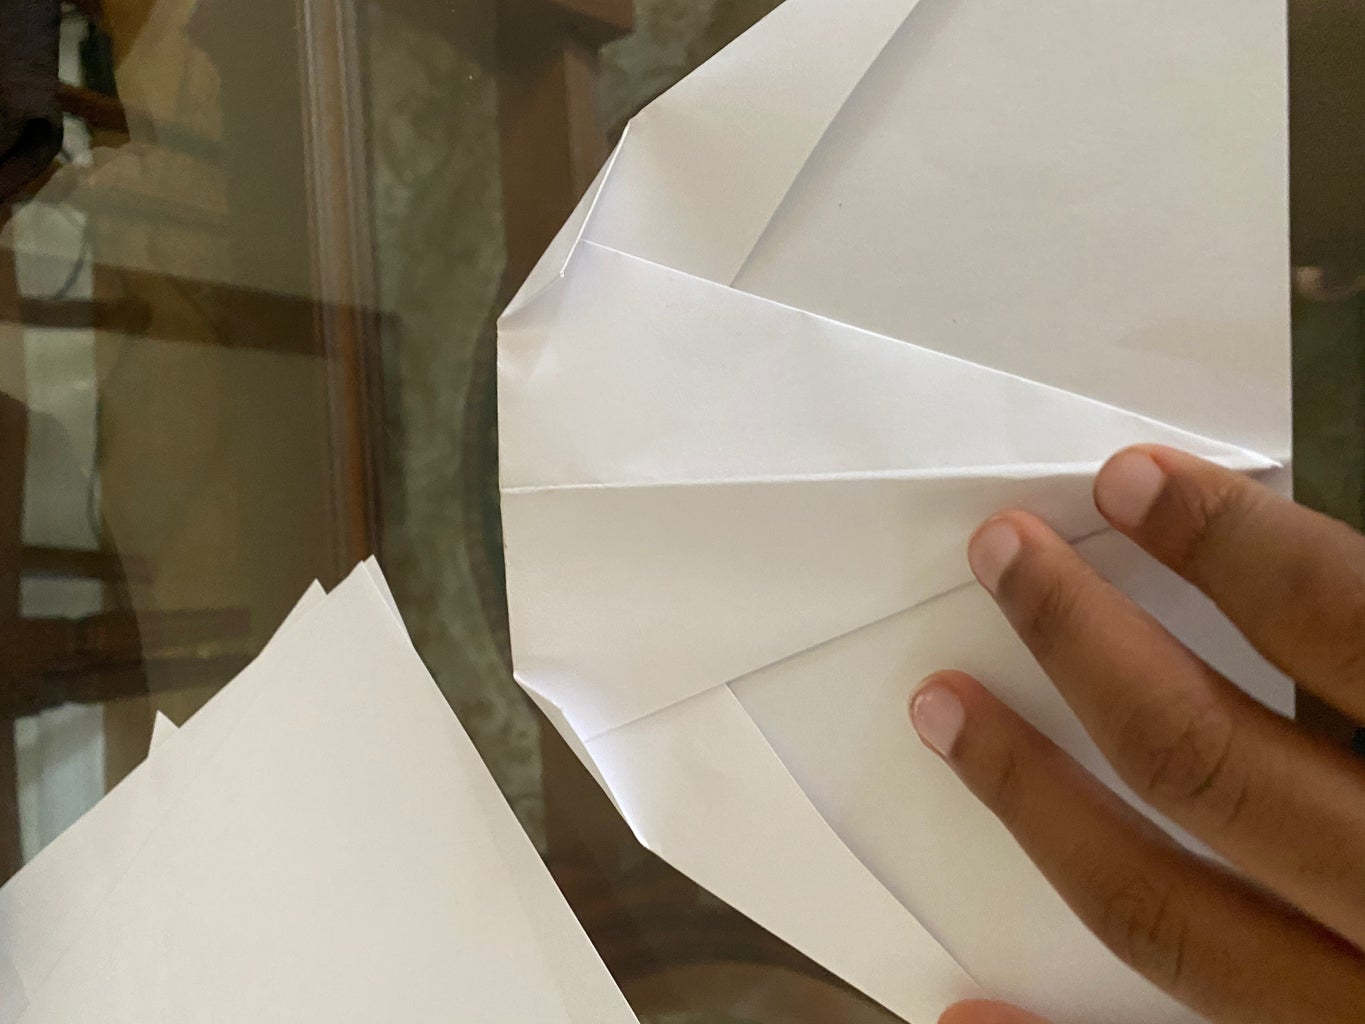 Step 10: Unfold and Tuck the Ends